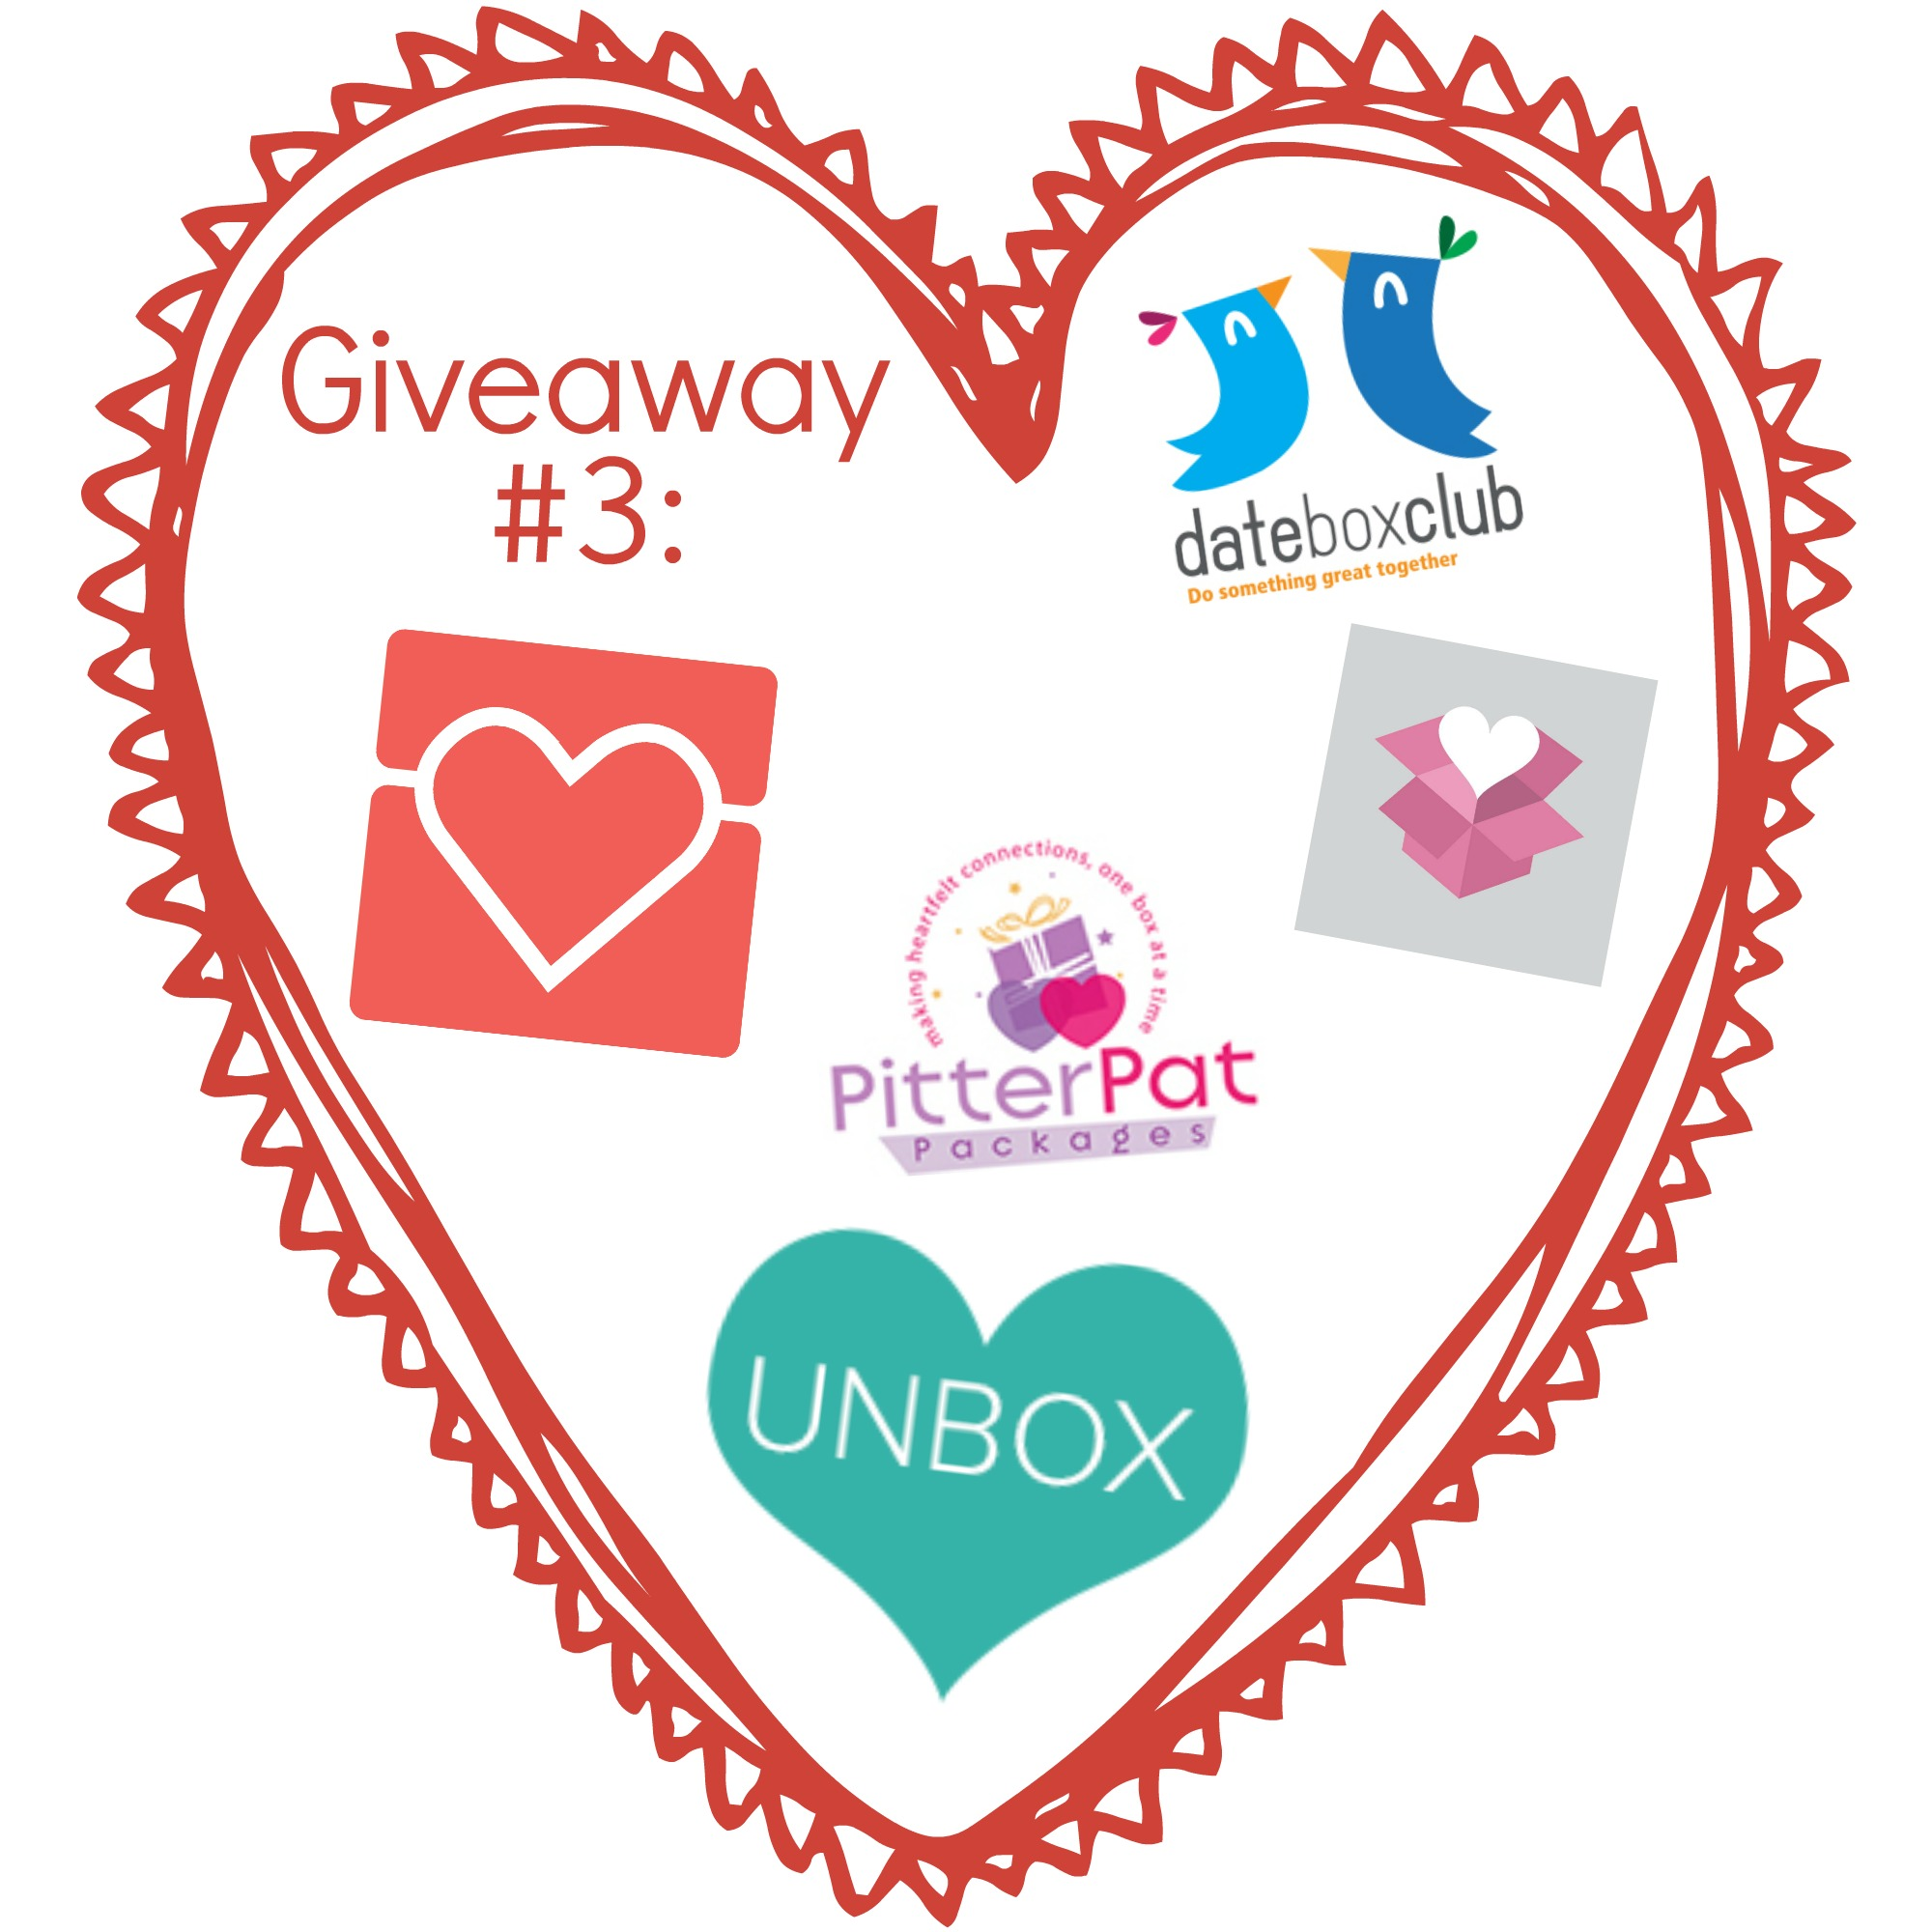 Date Box Club Subscription Box Review August 2015 - box